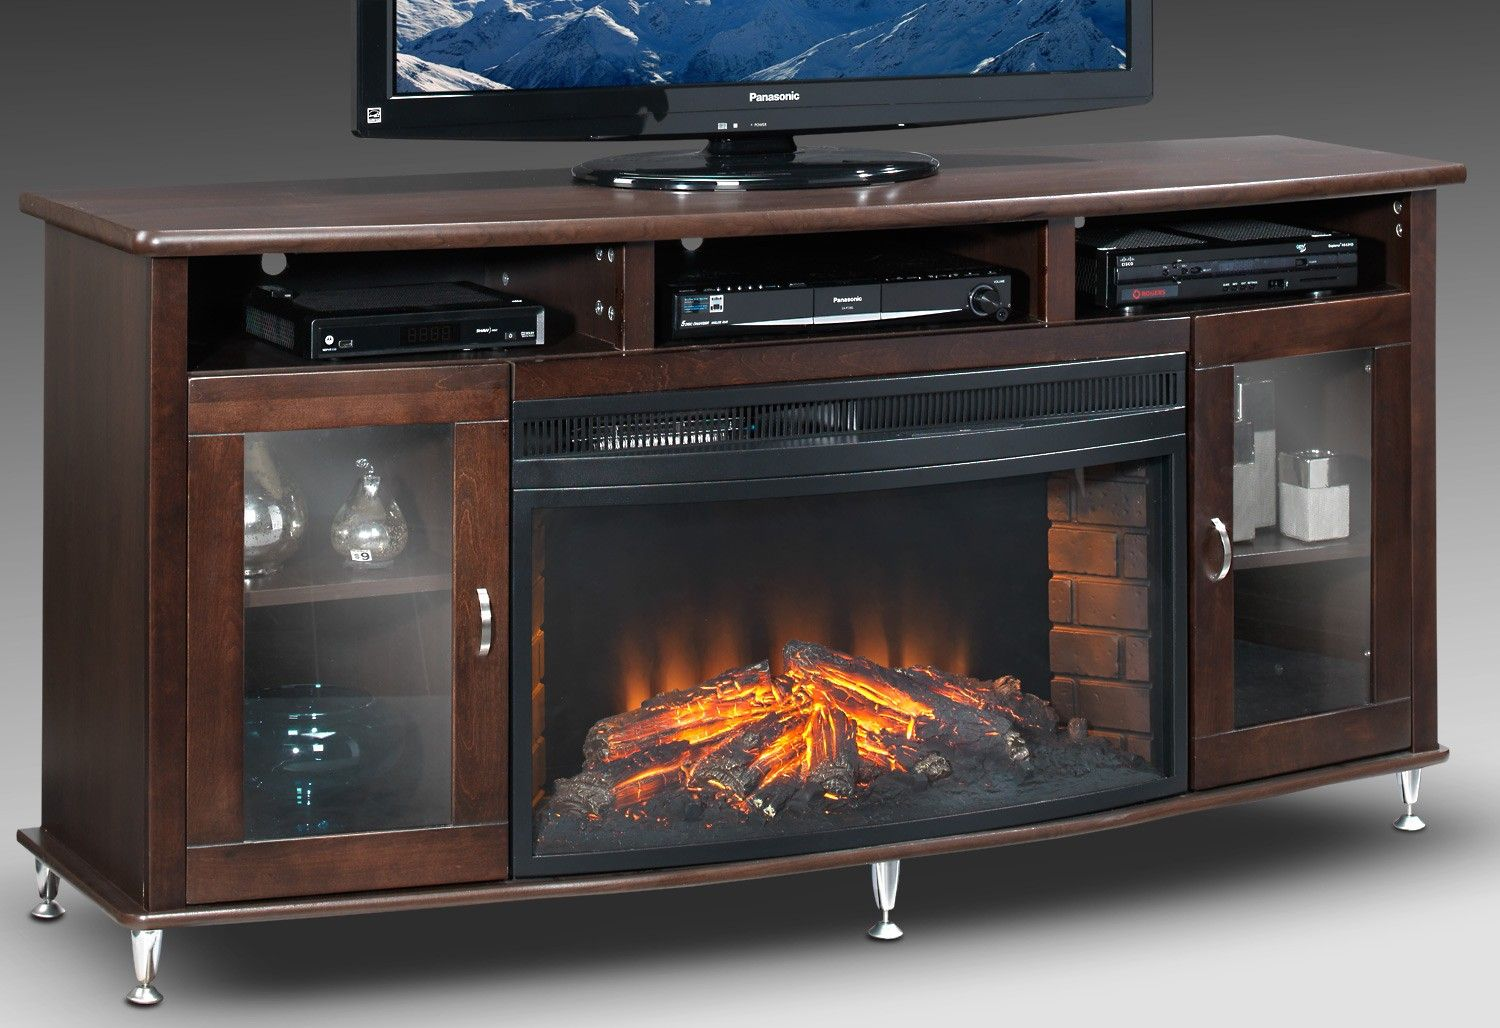 Kitchener Entertainment Wall Units Fireplace Credenza Leons For The Home Pinterest